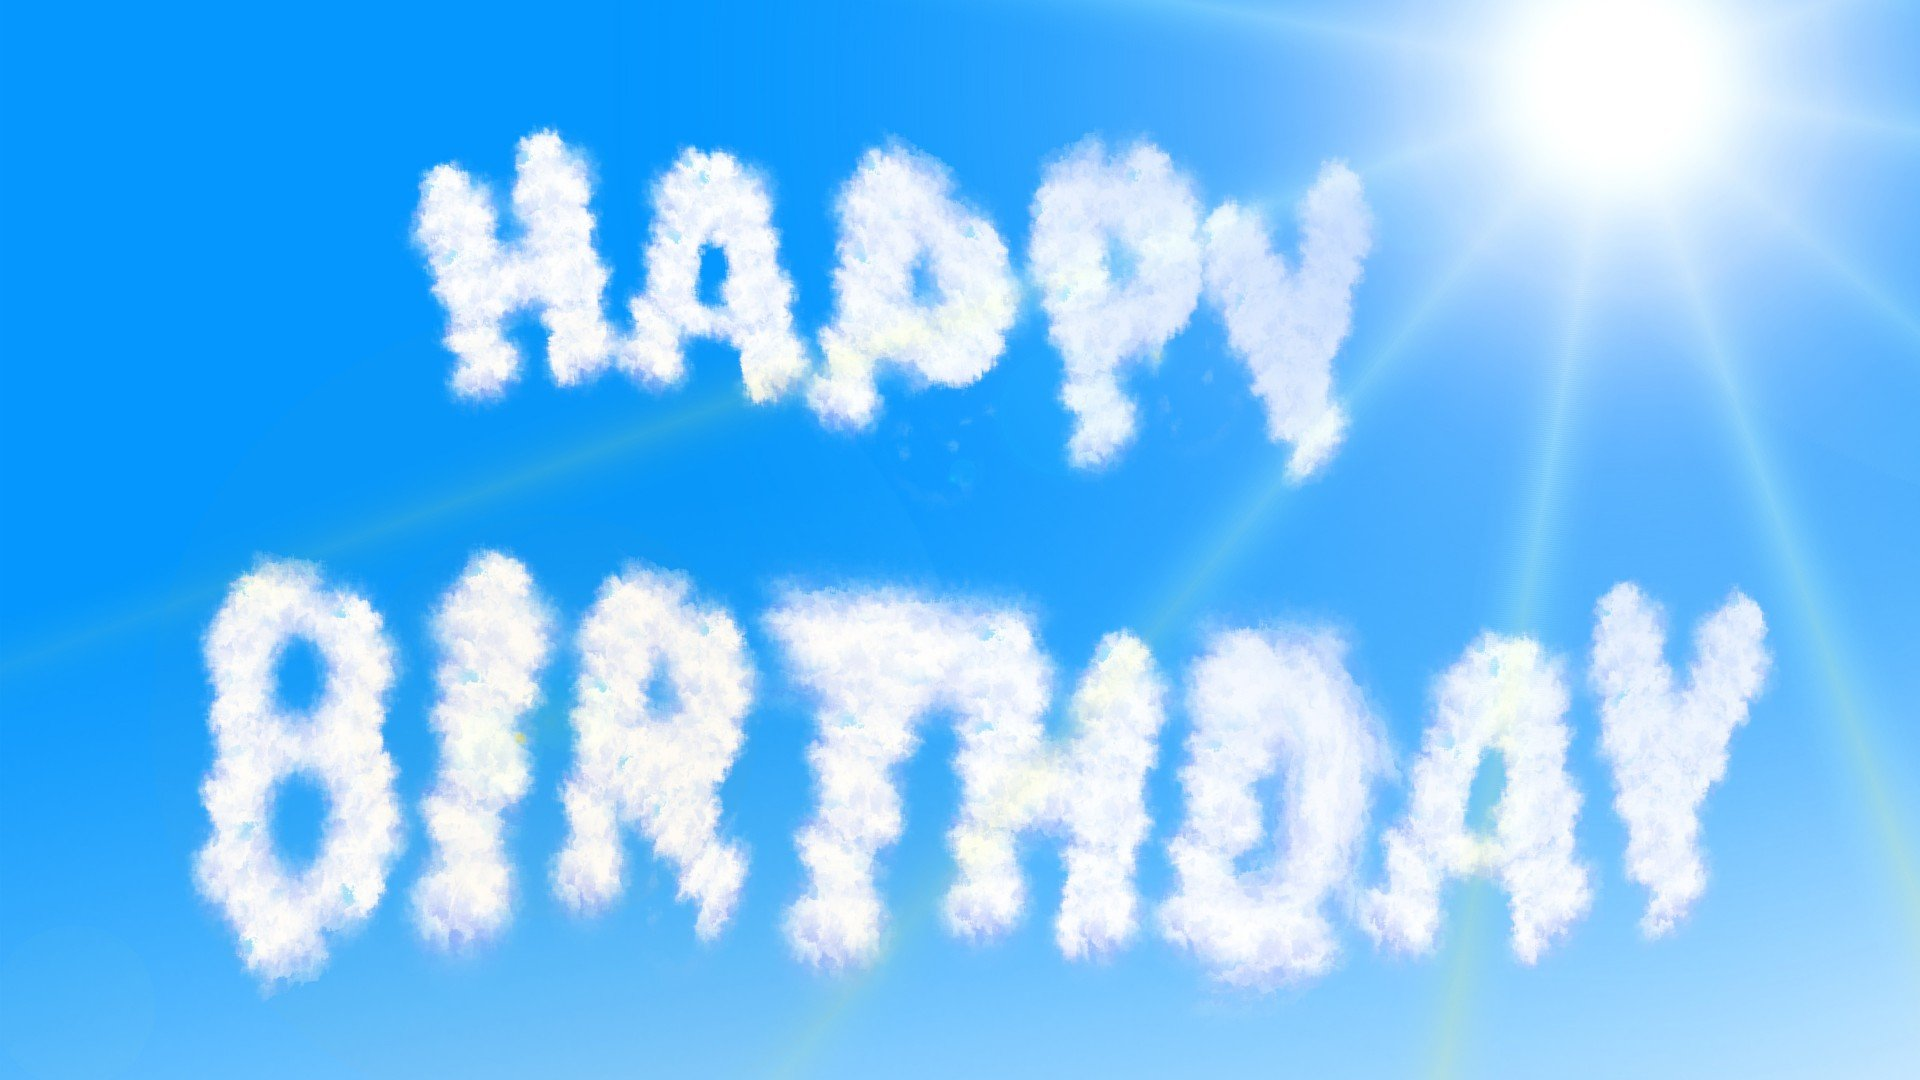 happy birthday clouds text 1920x1080